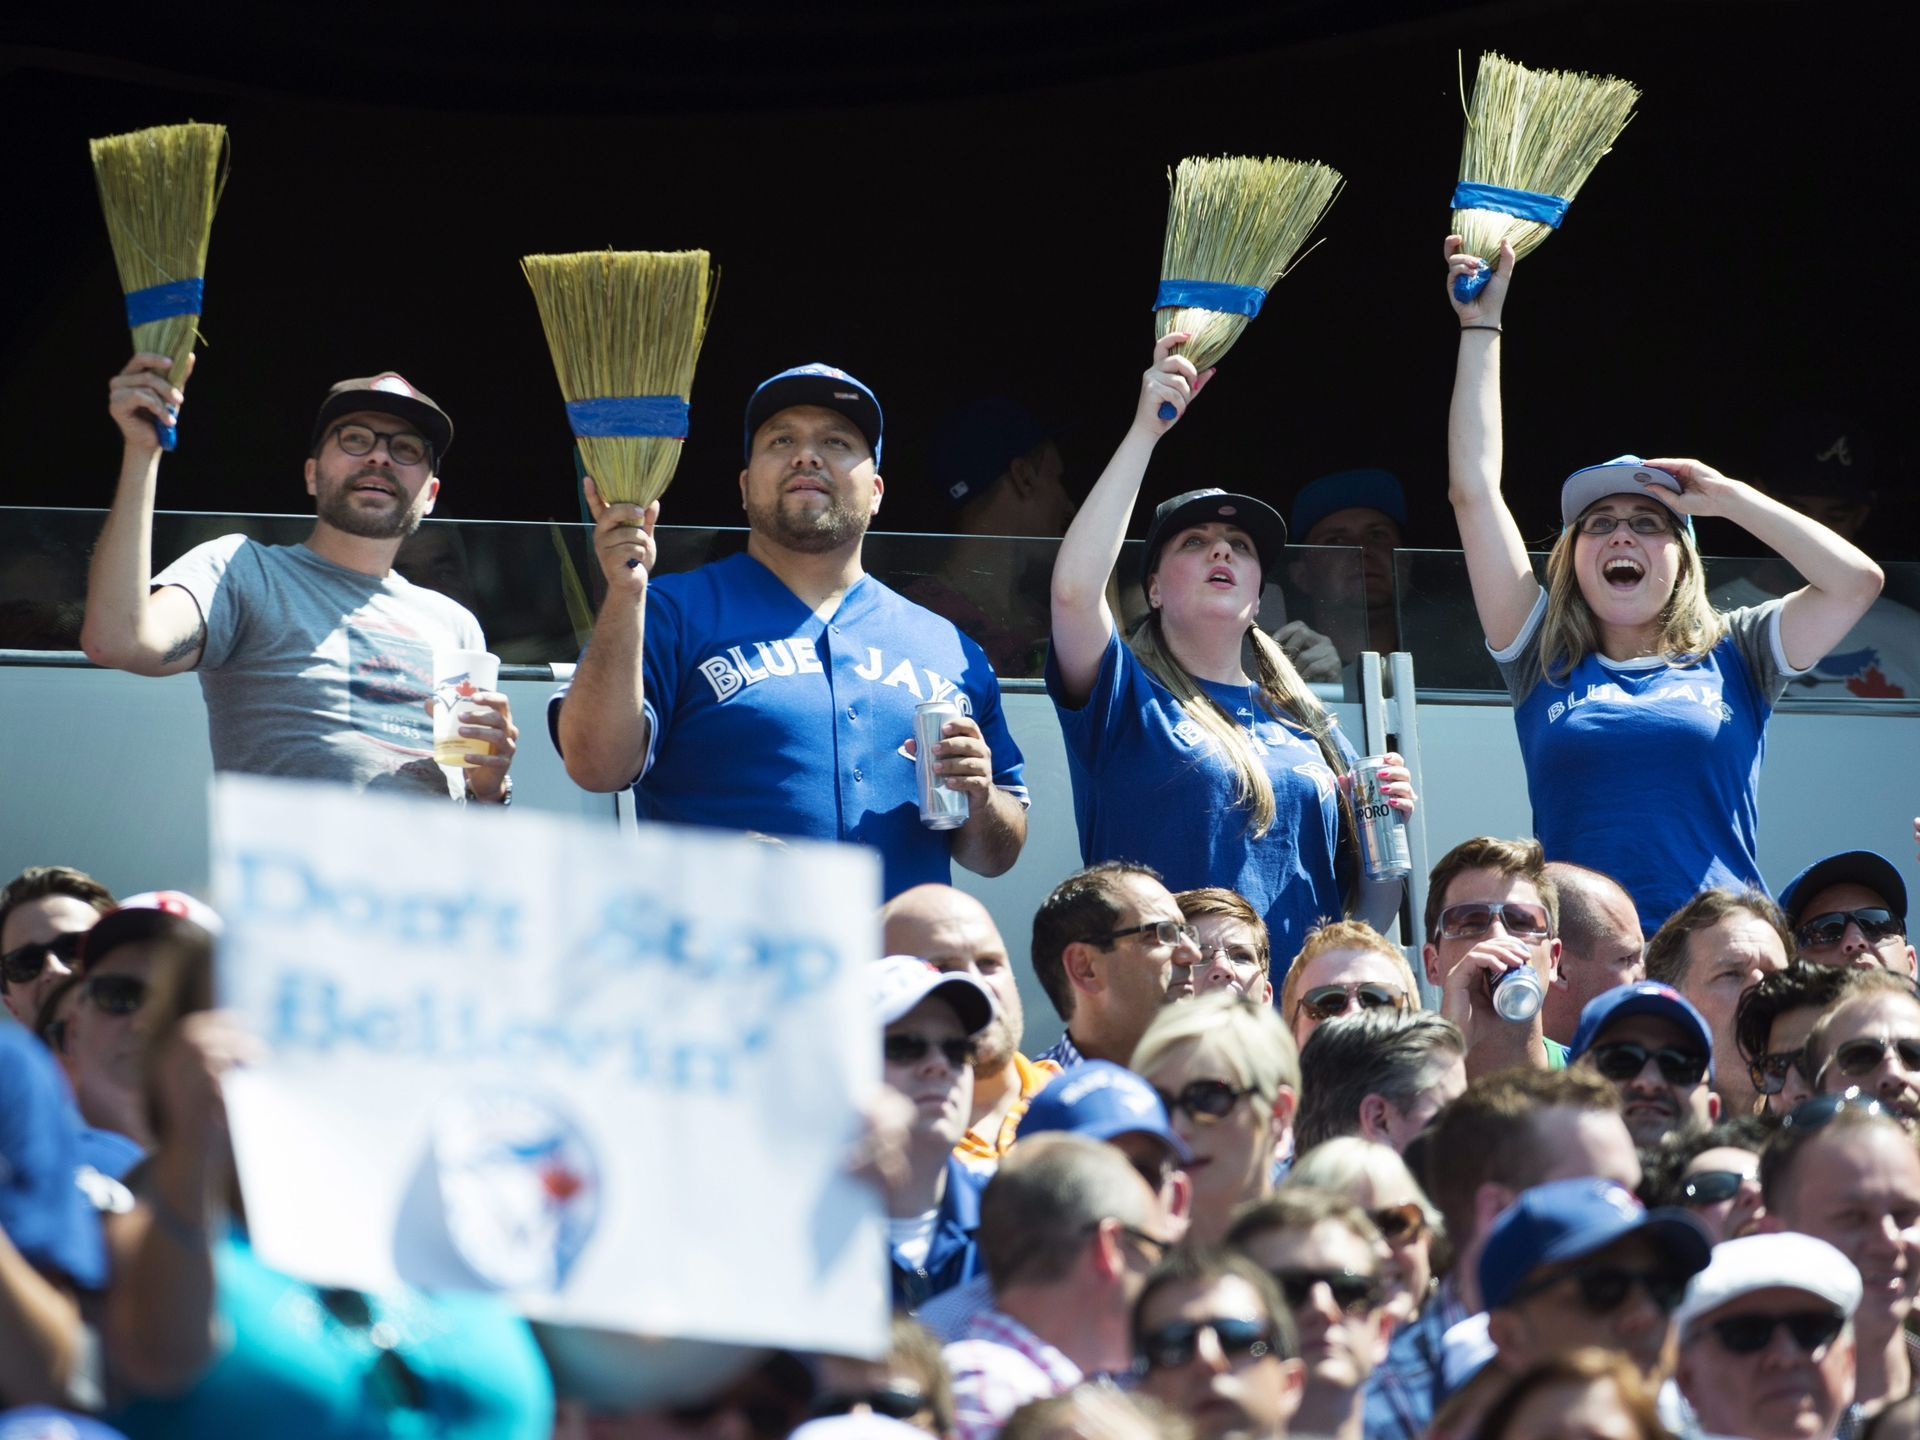 Fans celebrate the Toronto Blue Jays' series sweep of the Oakland Athletics in Toronto.  Darren Calabrese, The Canadian Press via AP